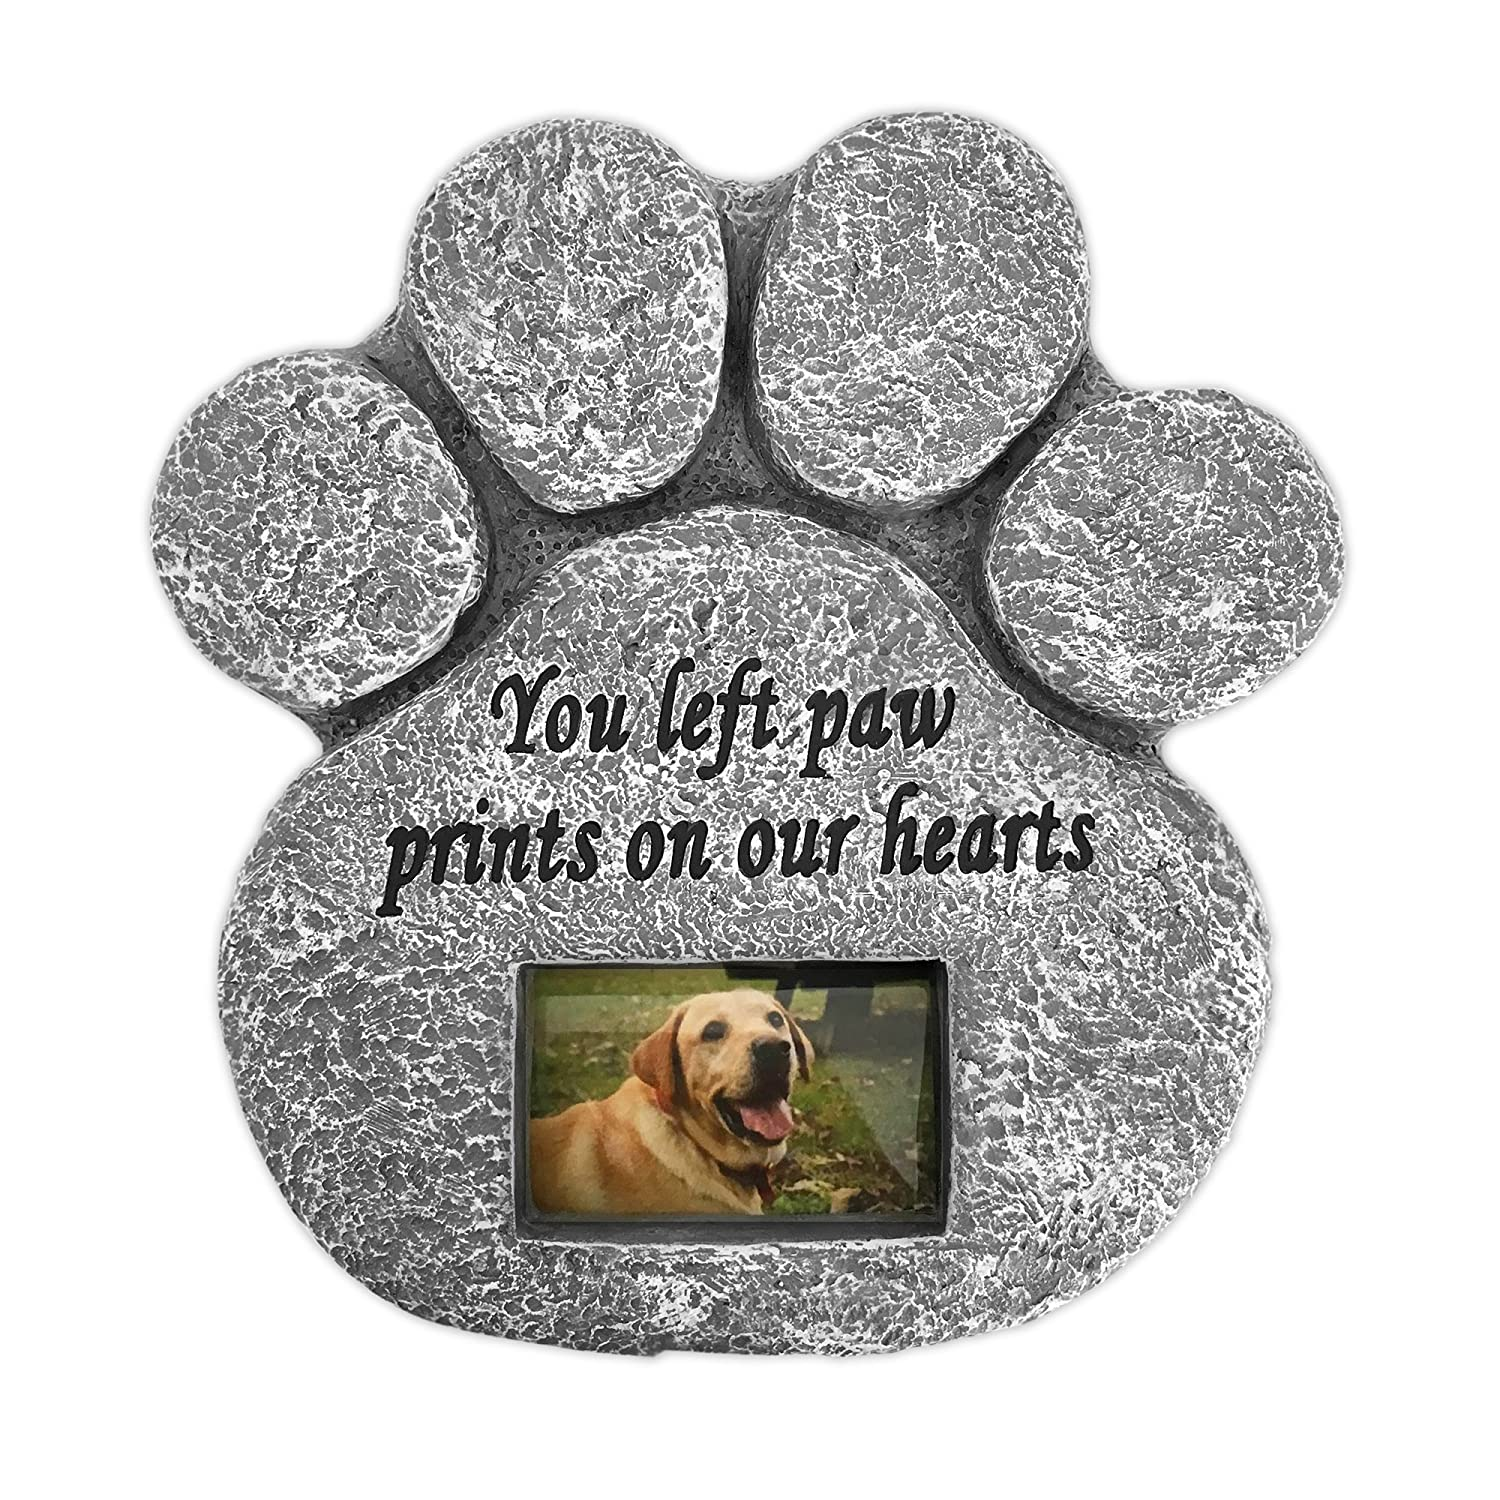 Amazon.com : \'You Left Paw Prints On Our Hearts\' Paw Print Pet ...